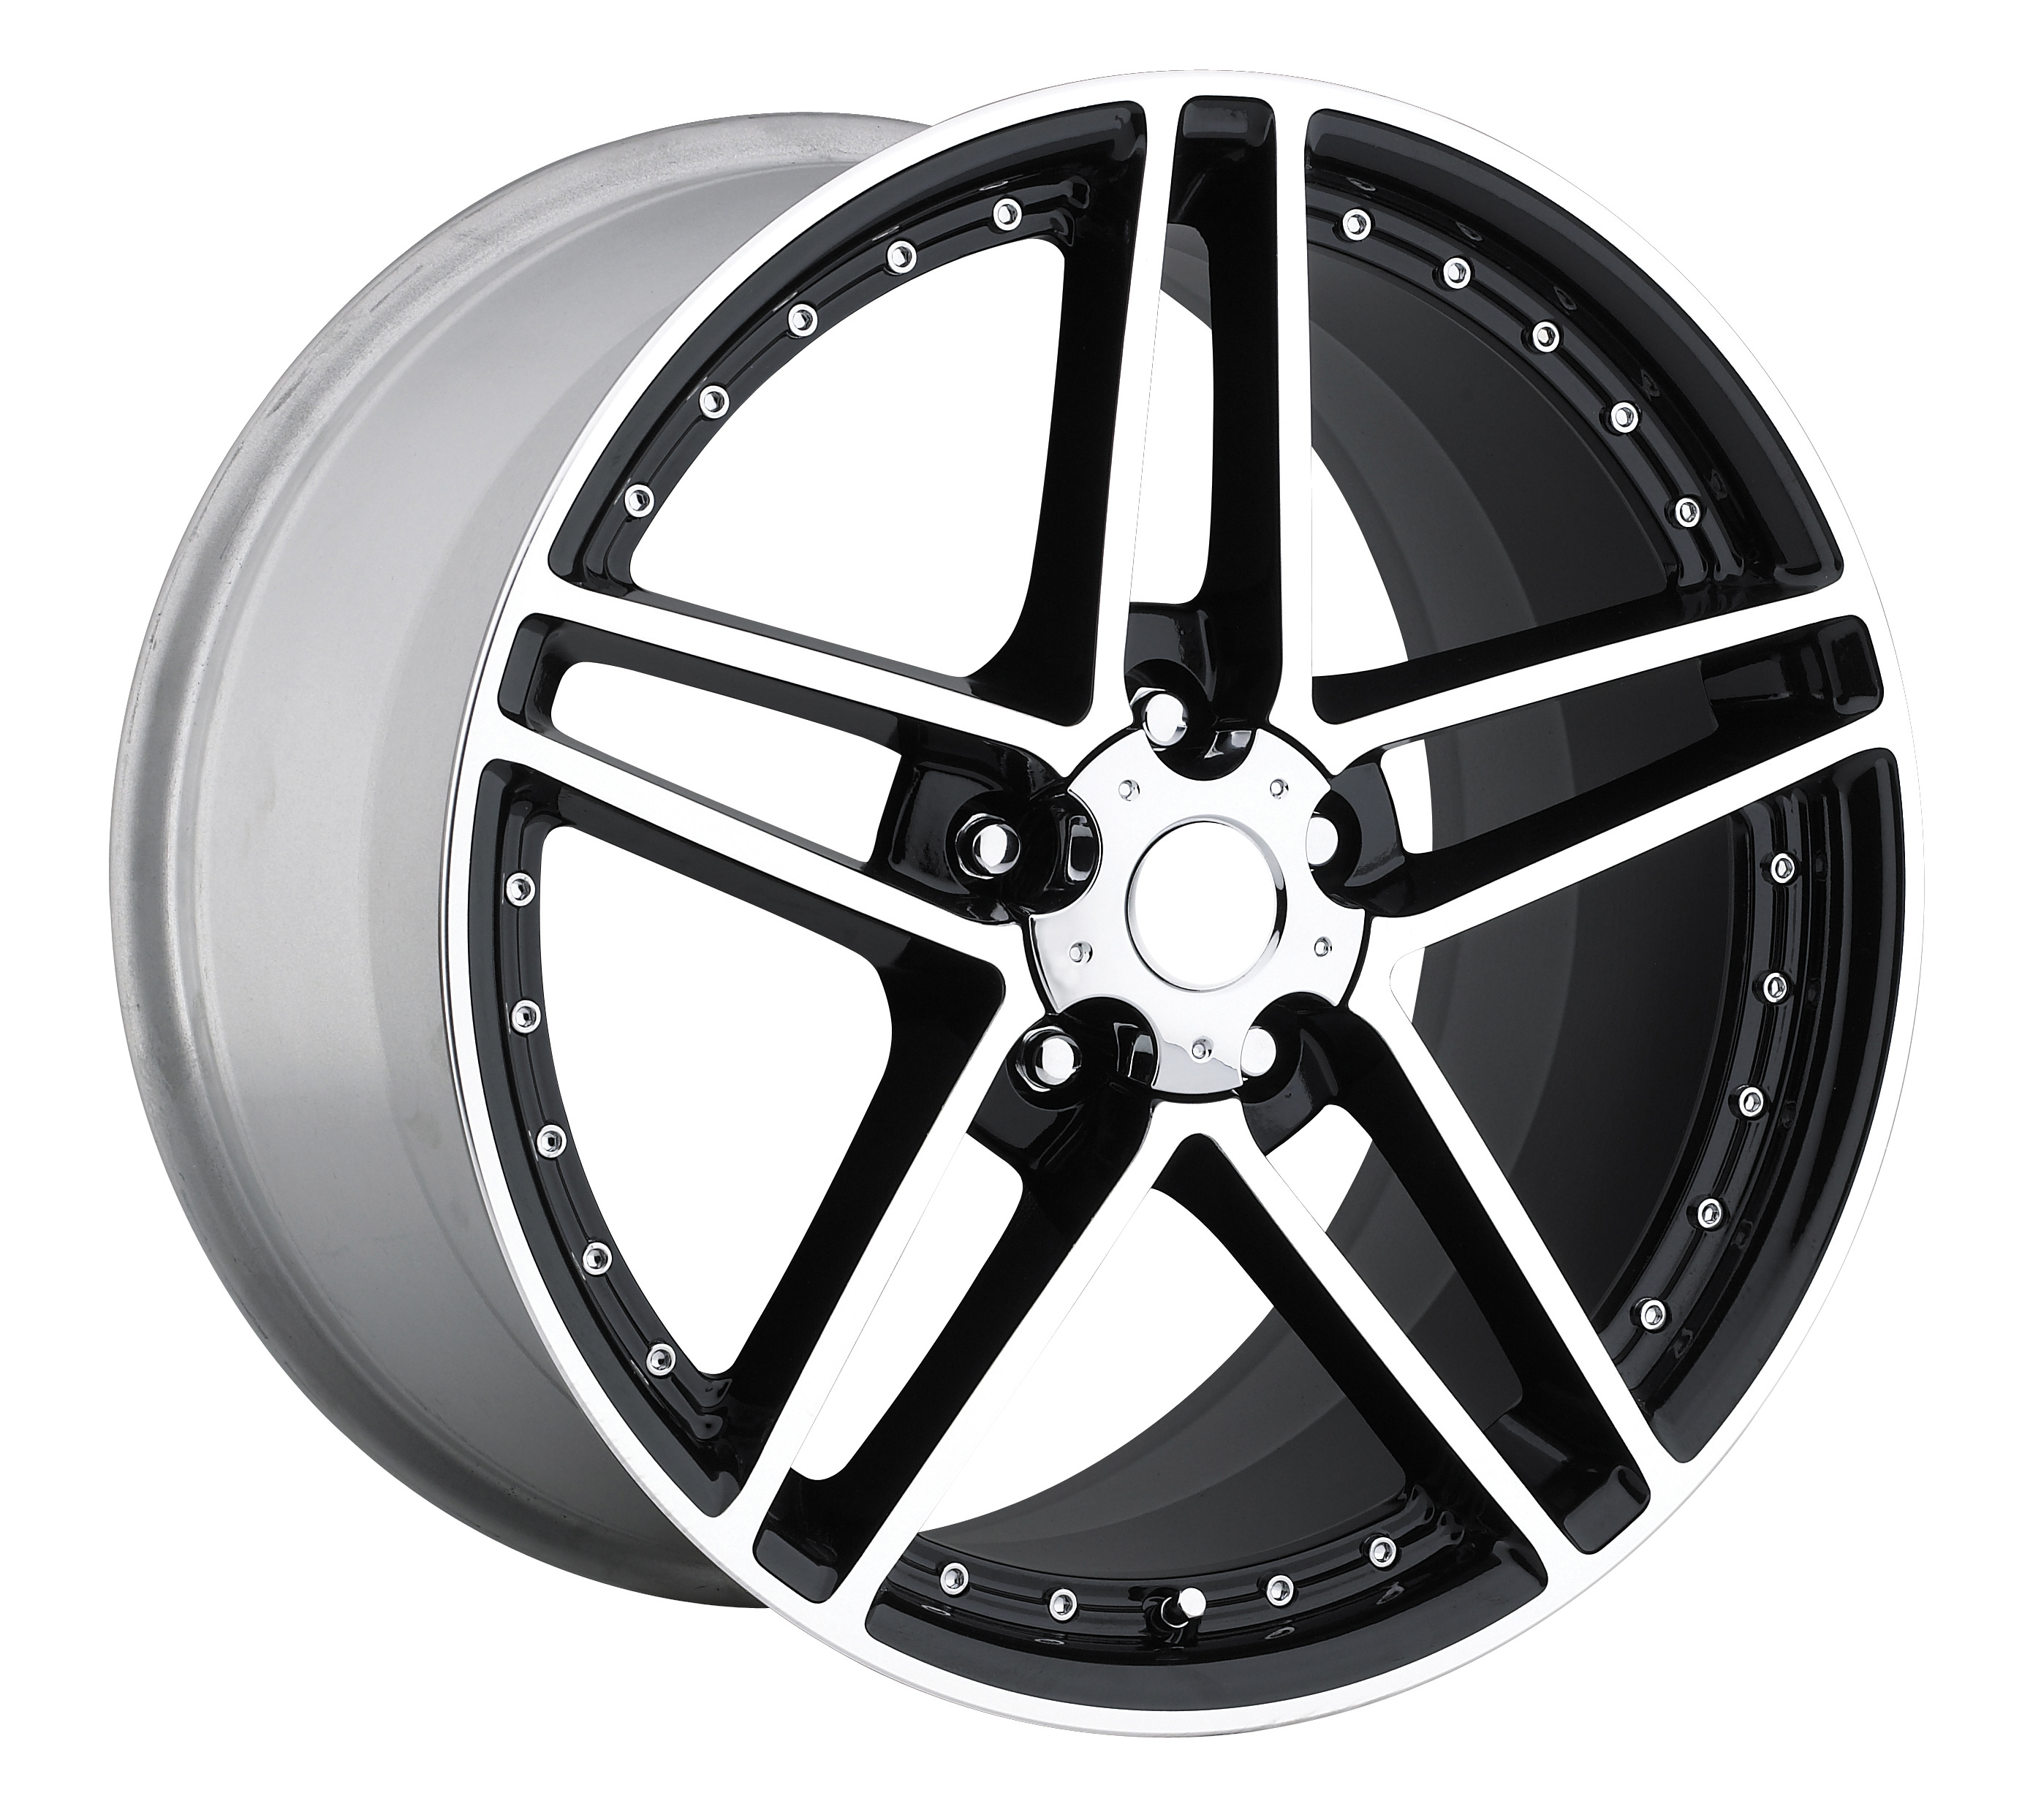 Chevrolet Corvette 1997-2012 19x11 5x4.75 +79 - C6 Z06 Motorsport Wheel -  Black Machine Face With Cap